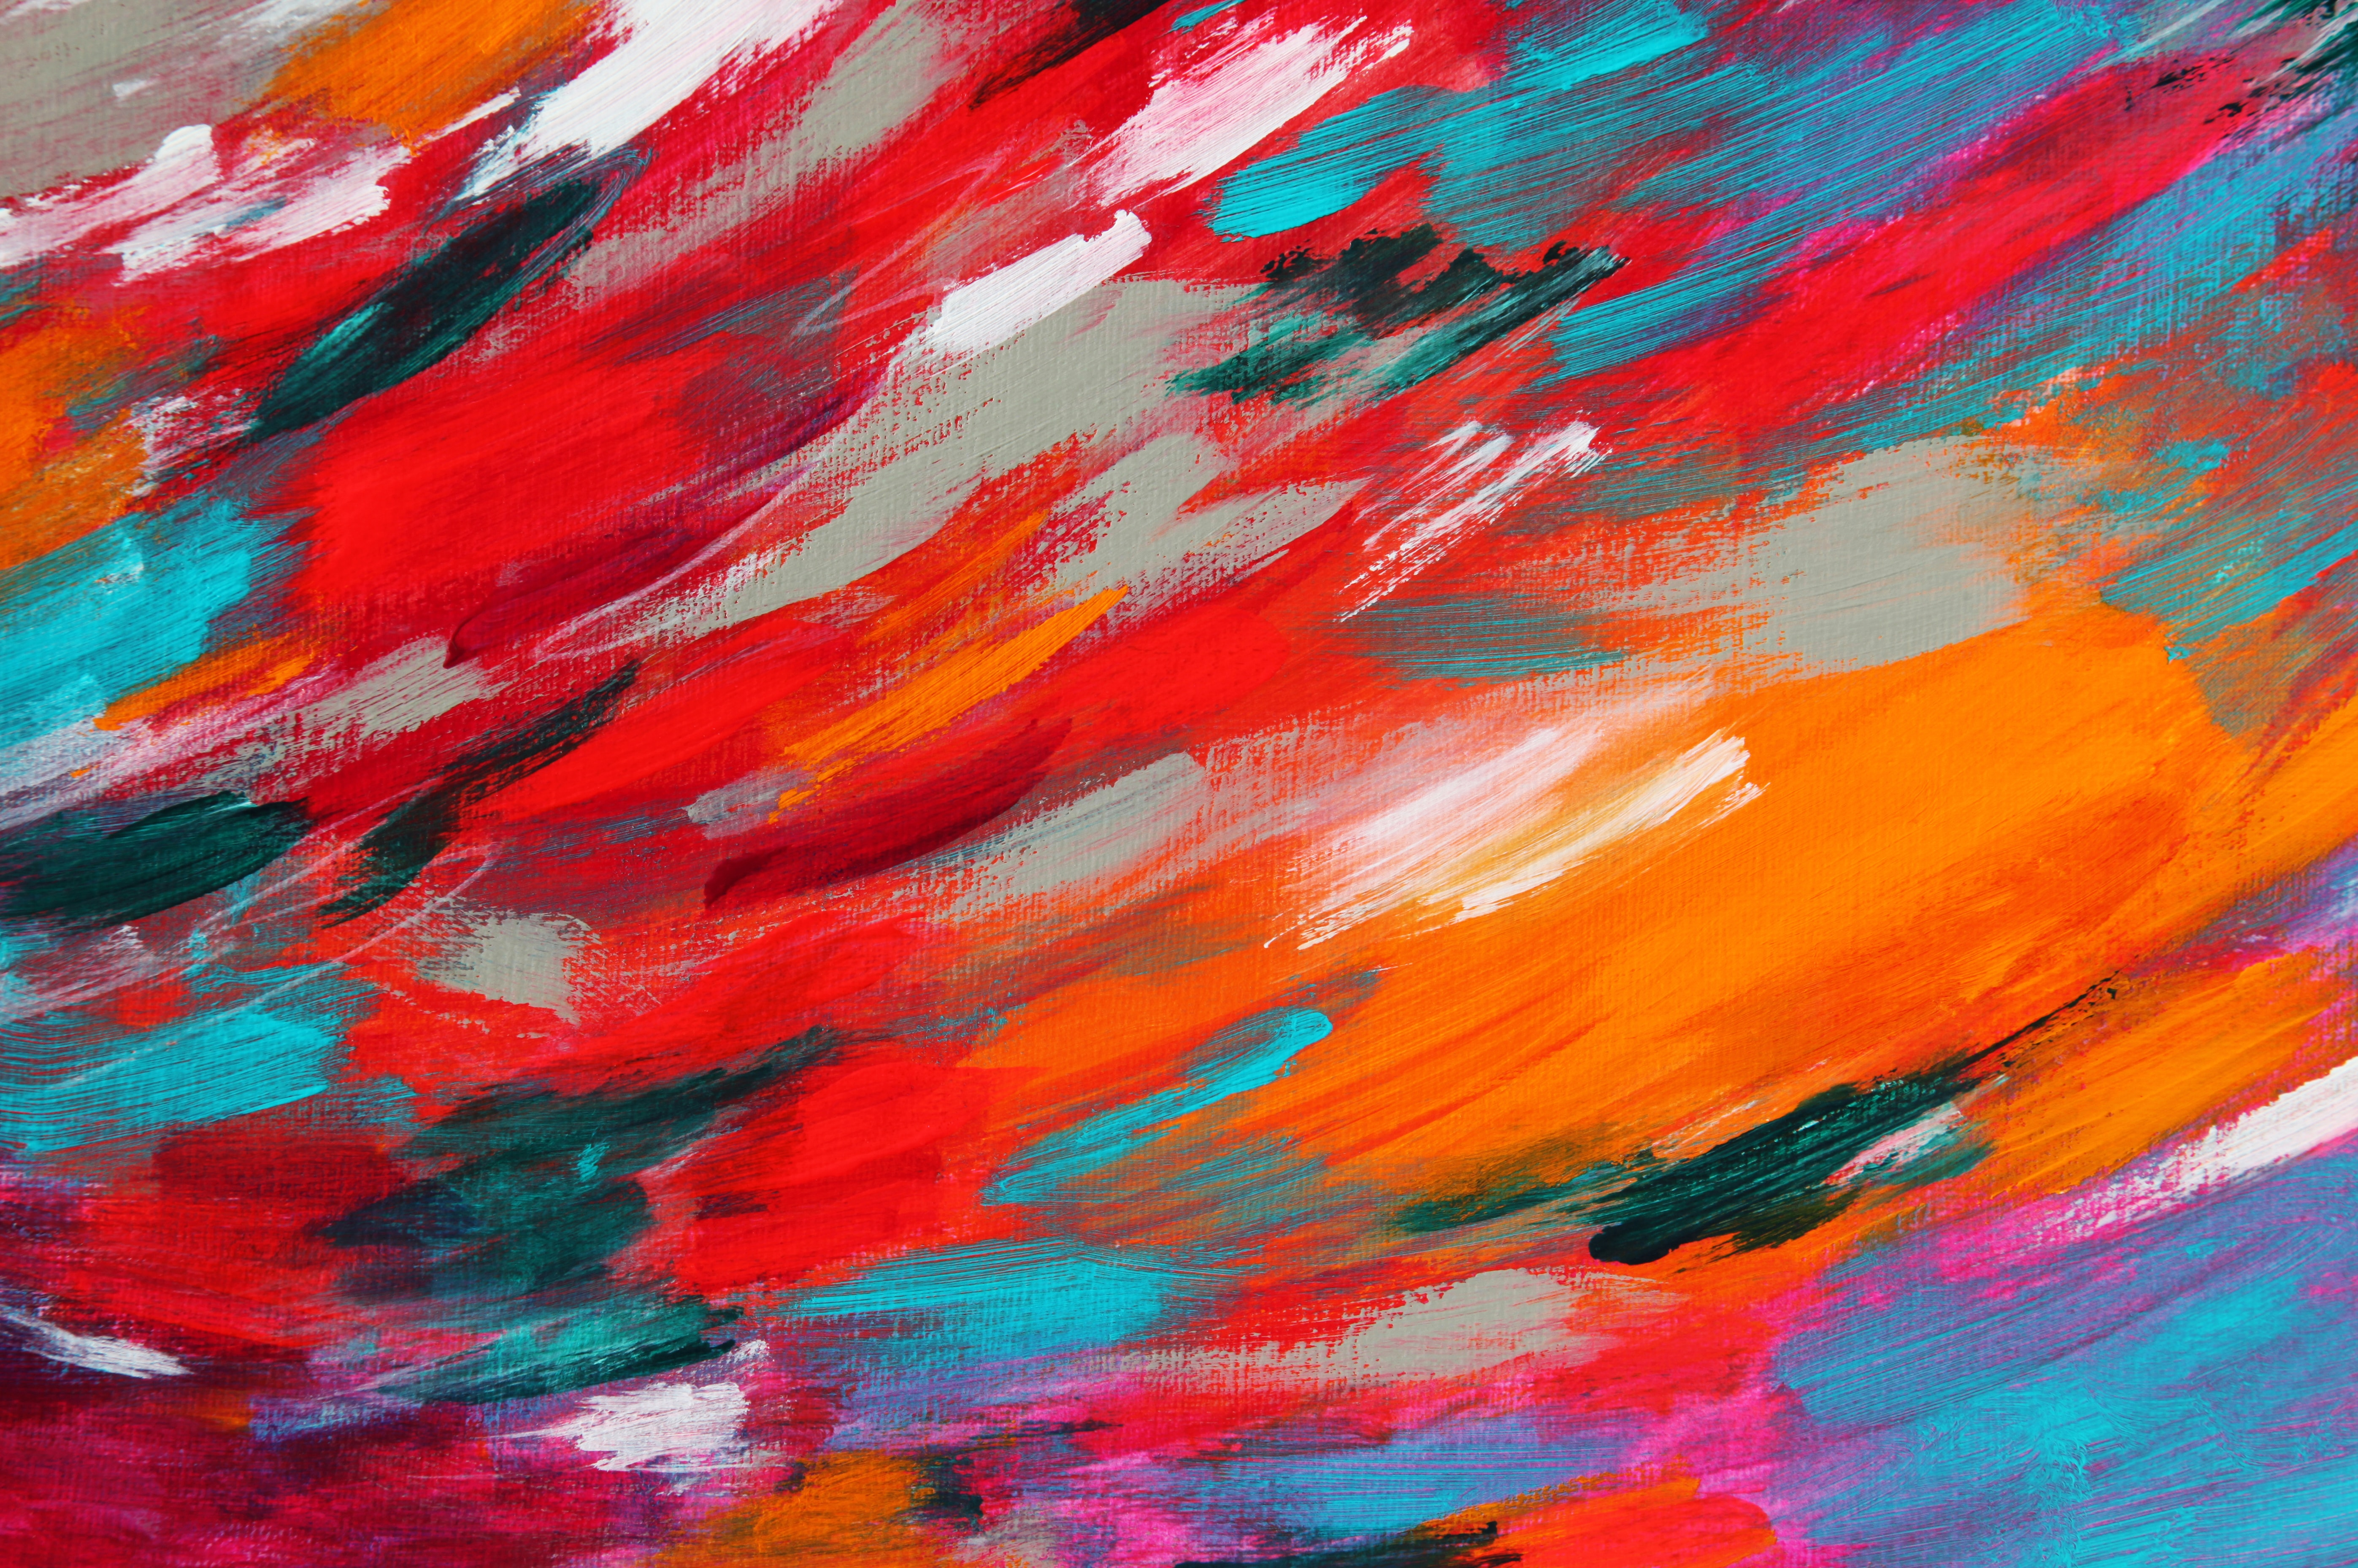 122017 download wallpaper Textures, Texture, Paint, Strokes, Multicolored, Motley, Abstract screensavers and pictures for free